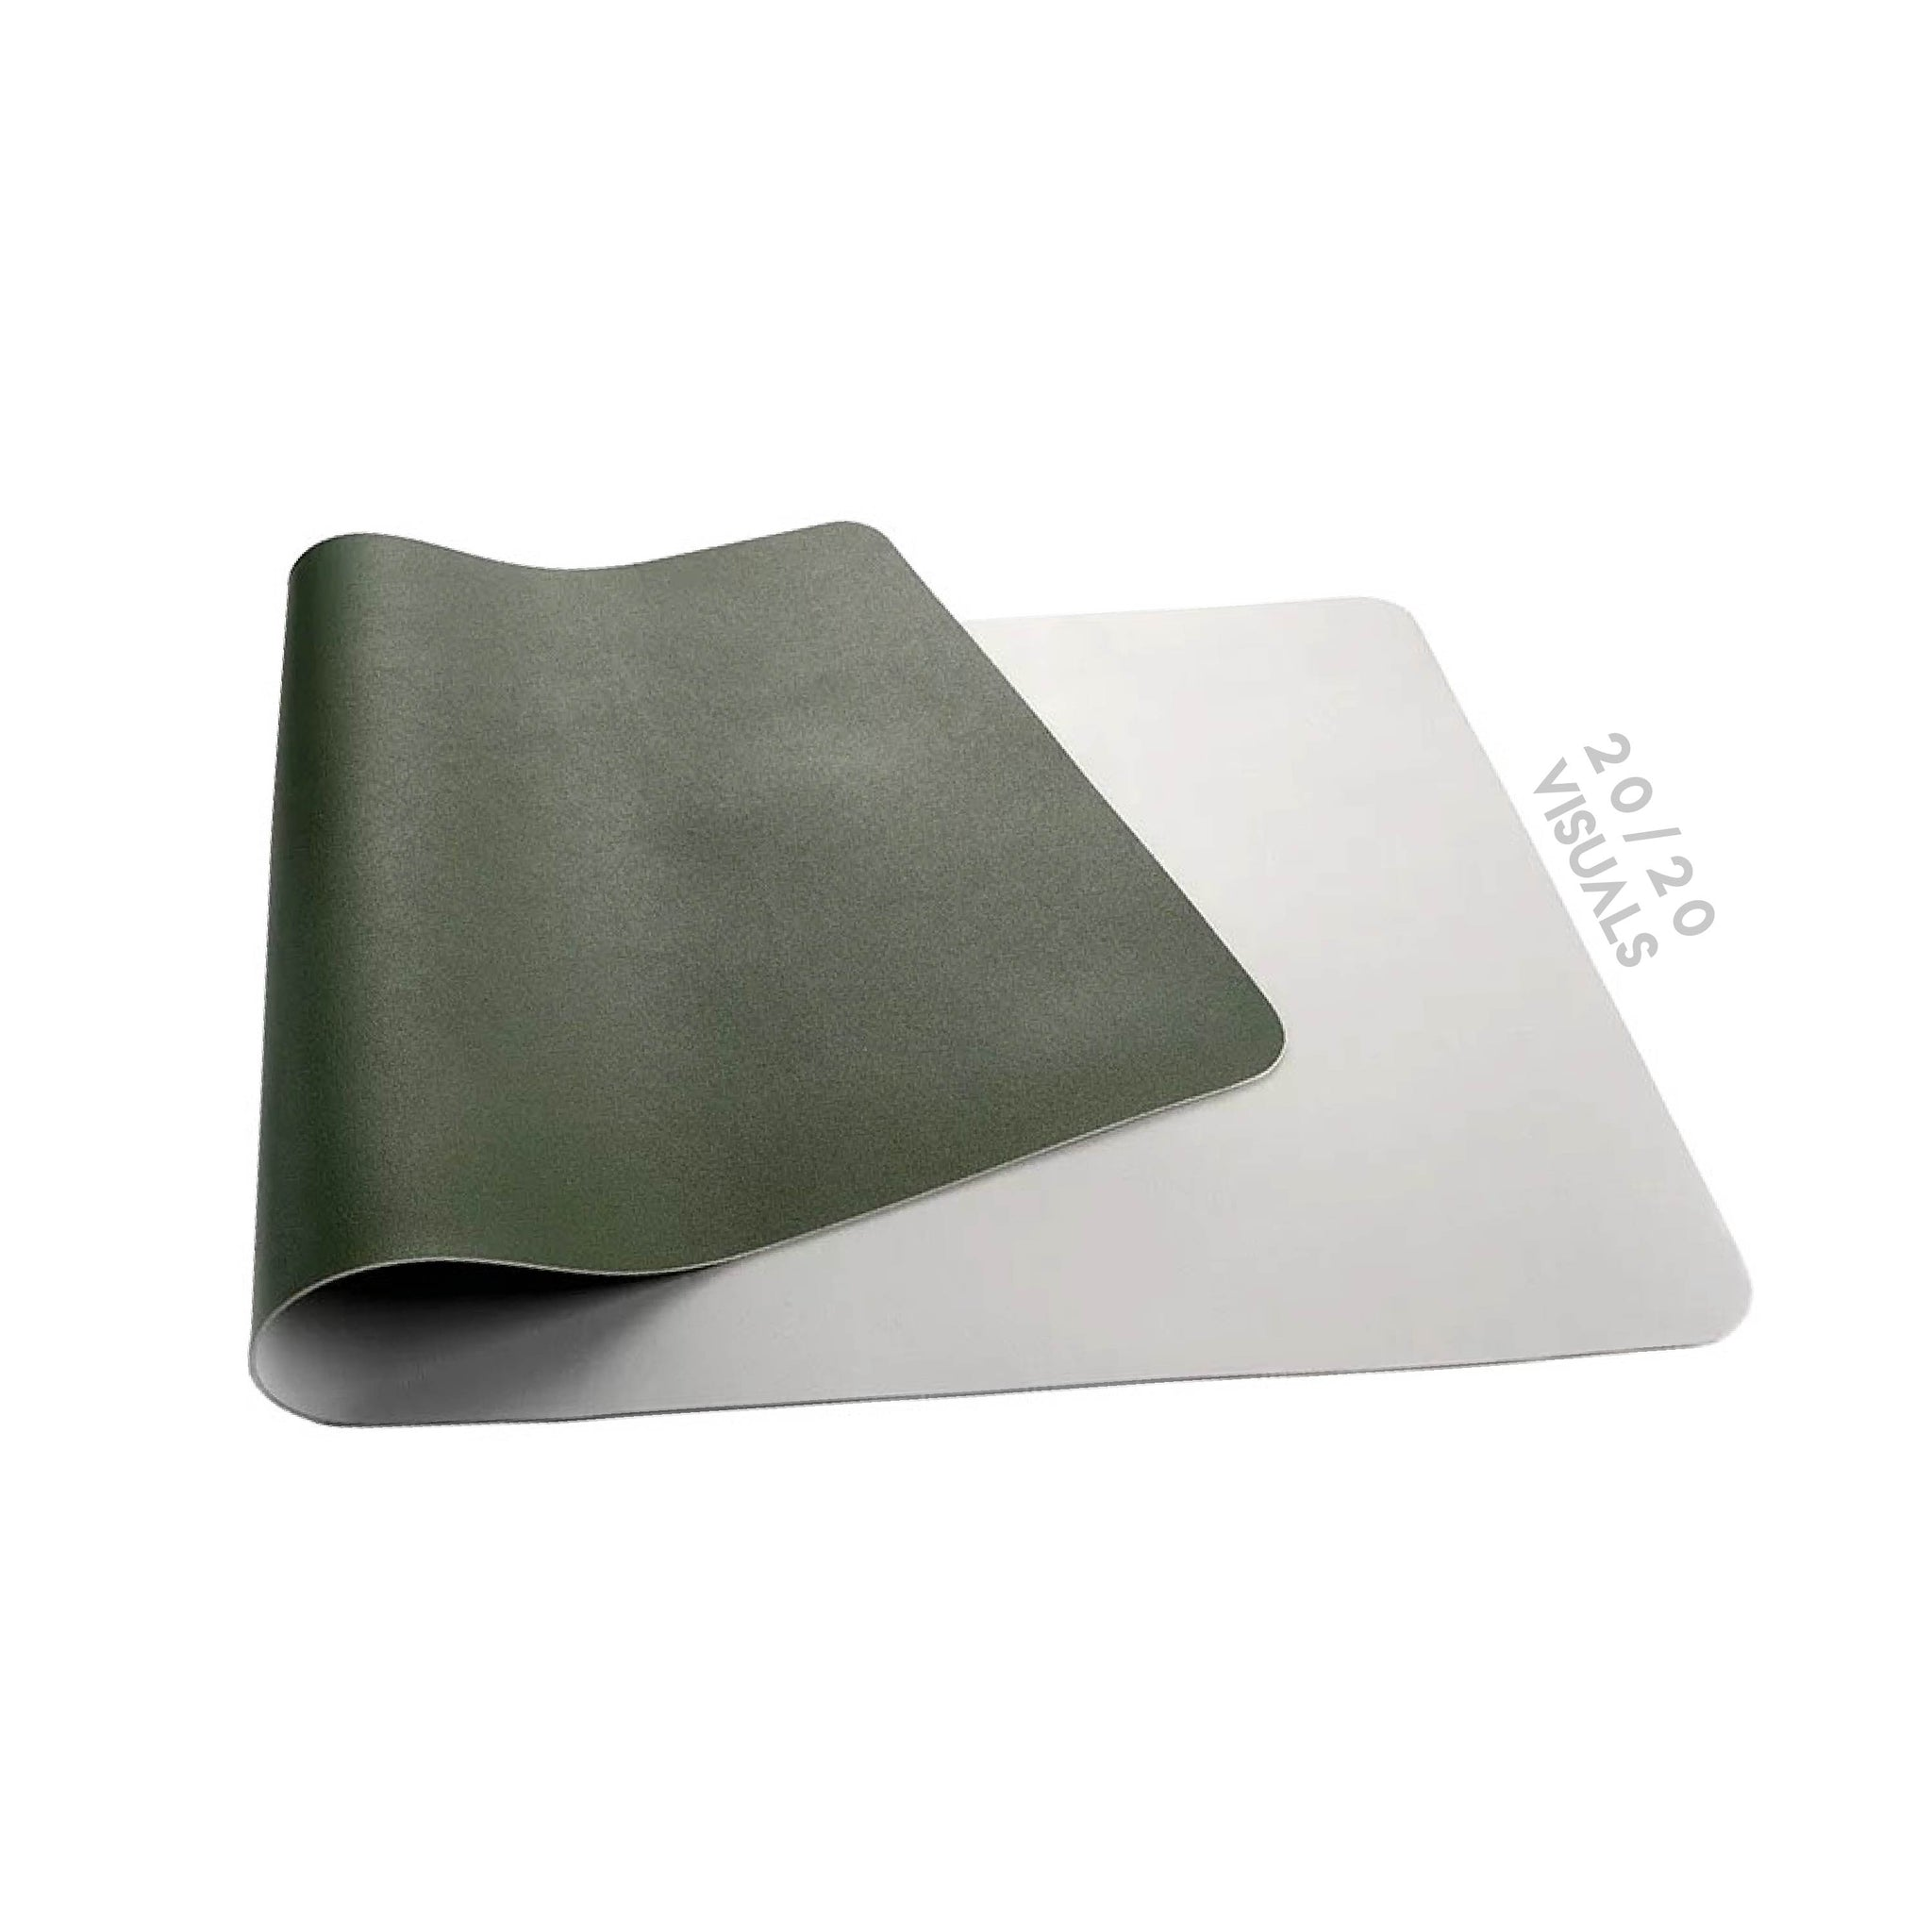 Double-sided Work Desk Mat